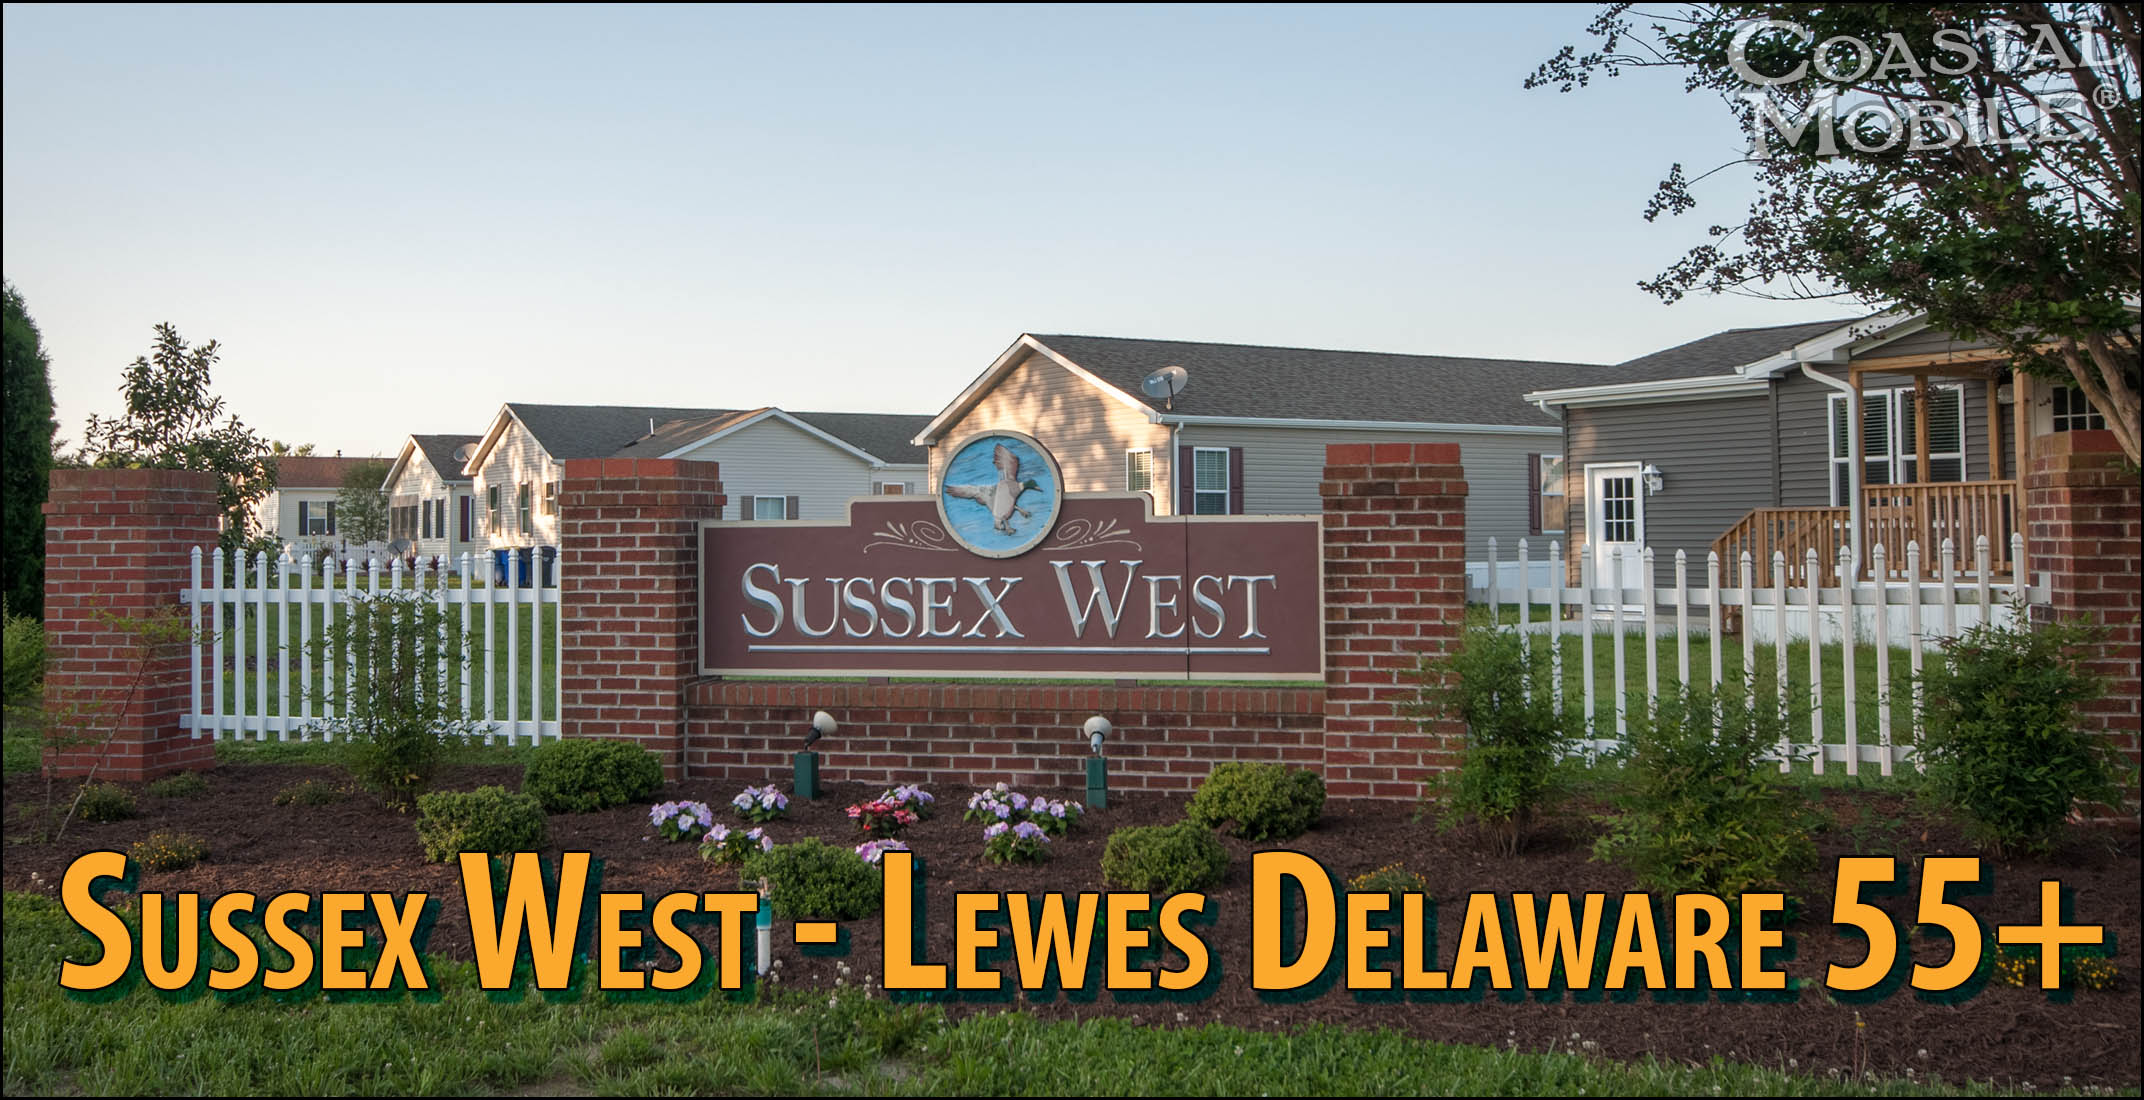 sussex east mhp lewes delaware